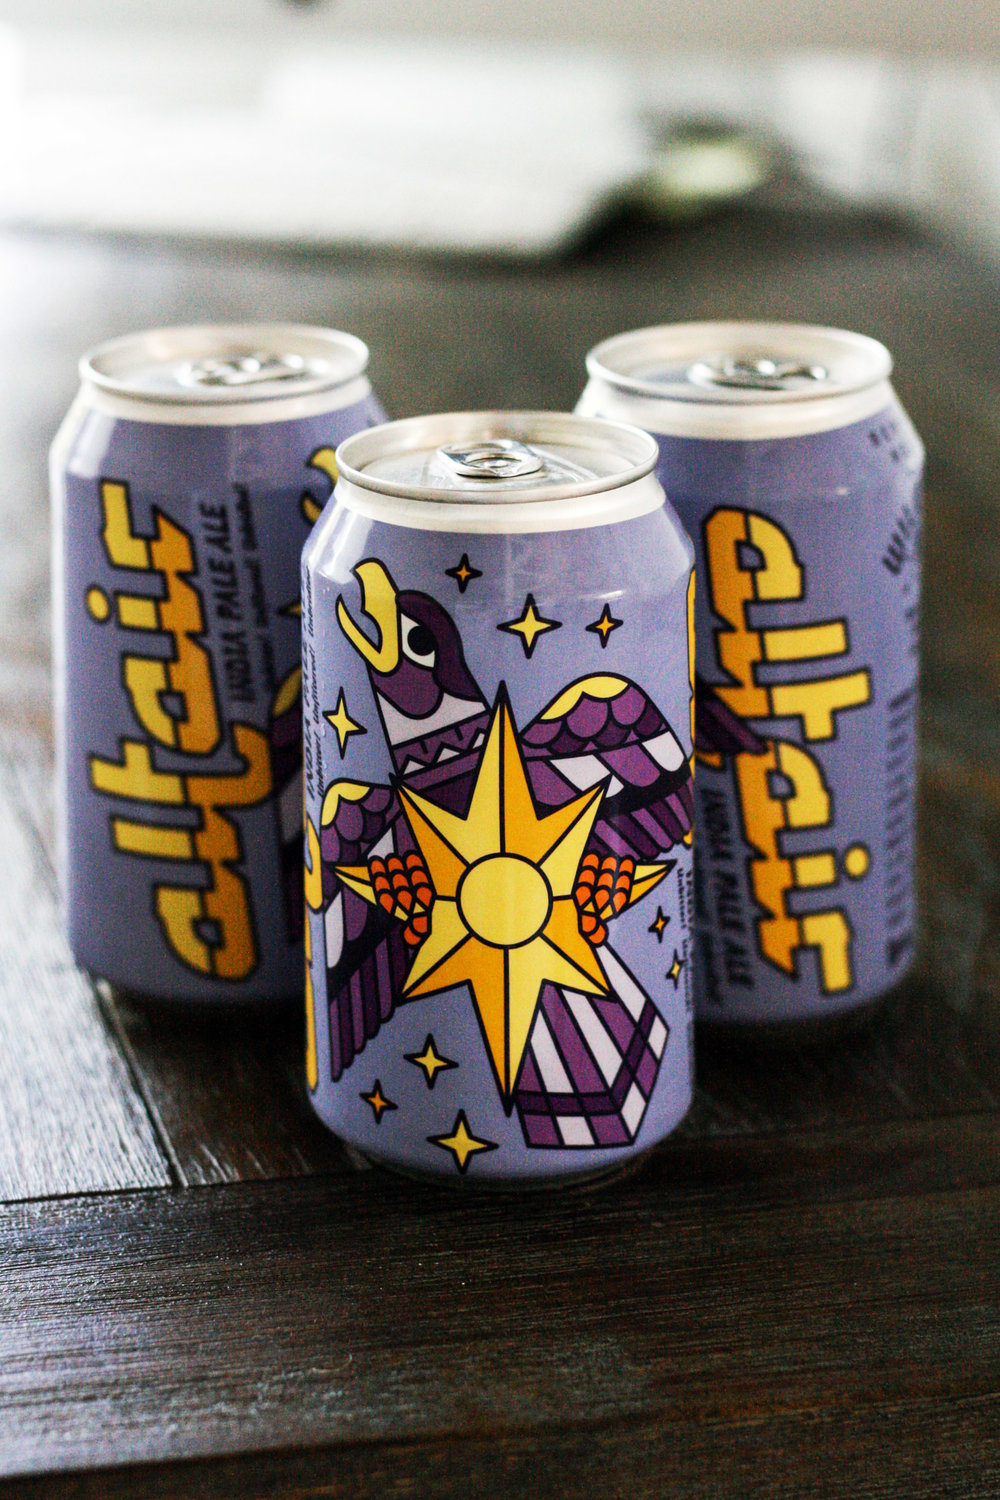 WH015_Altair_Cans.jpg